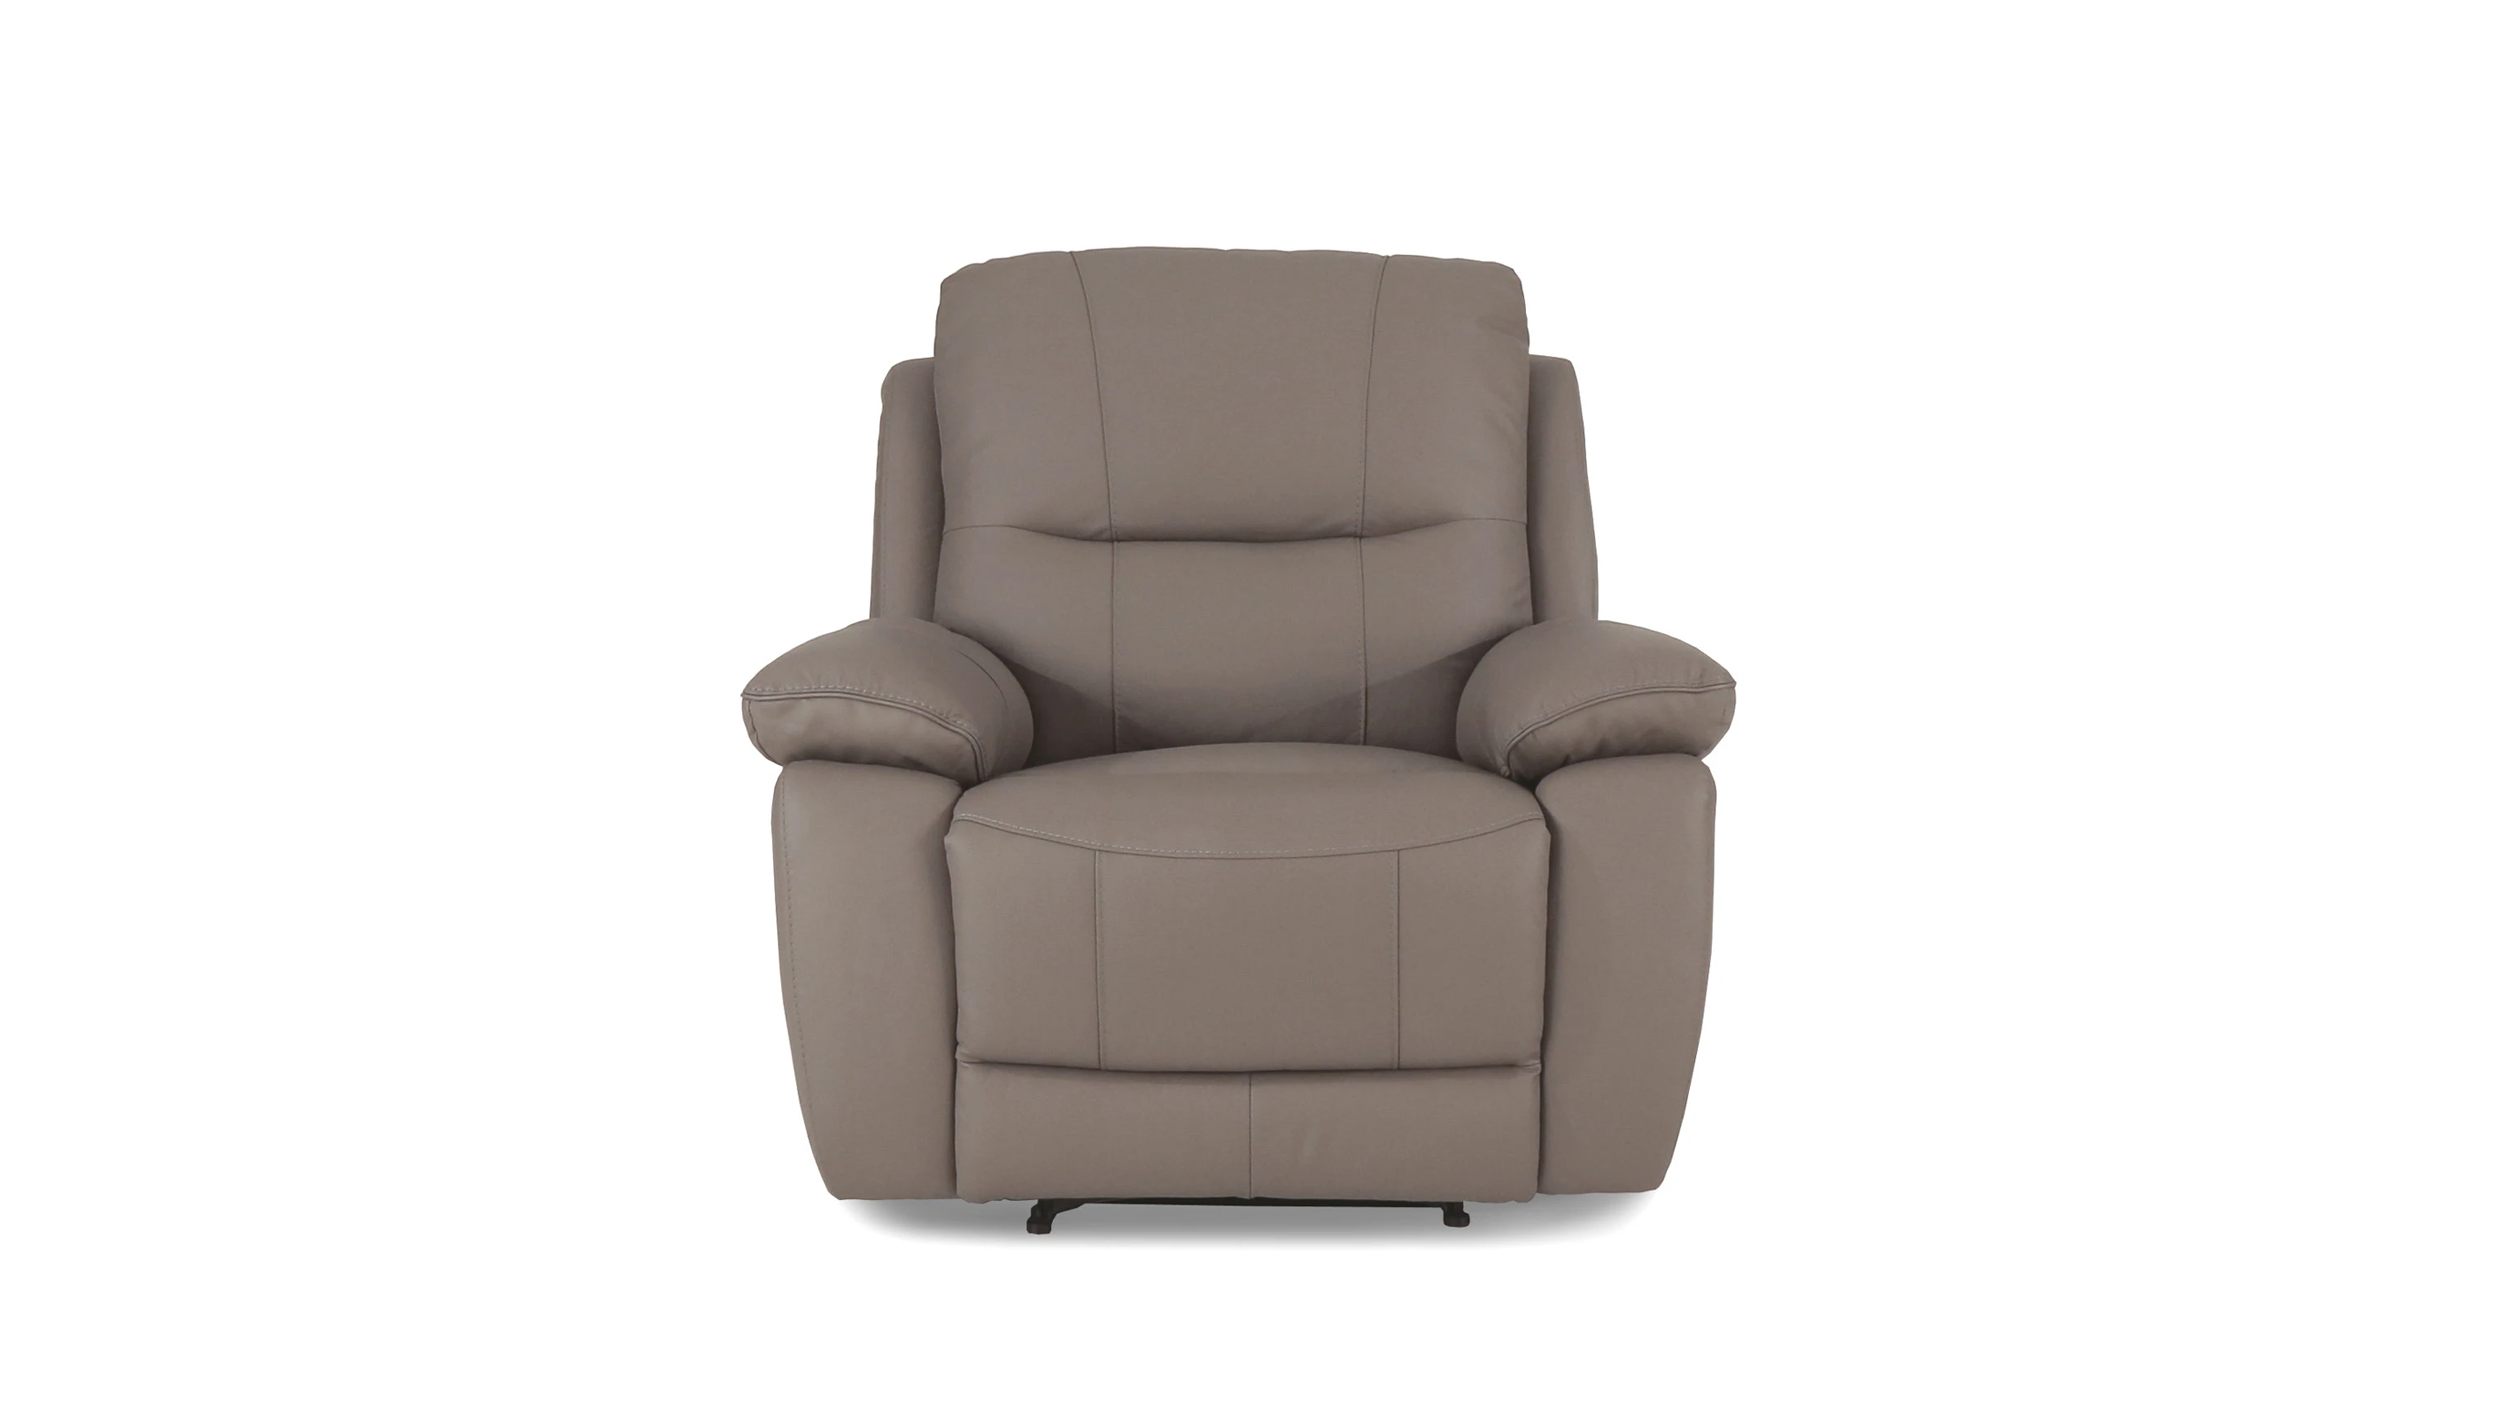 Tivoli Recliner Chair in Light Grey